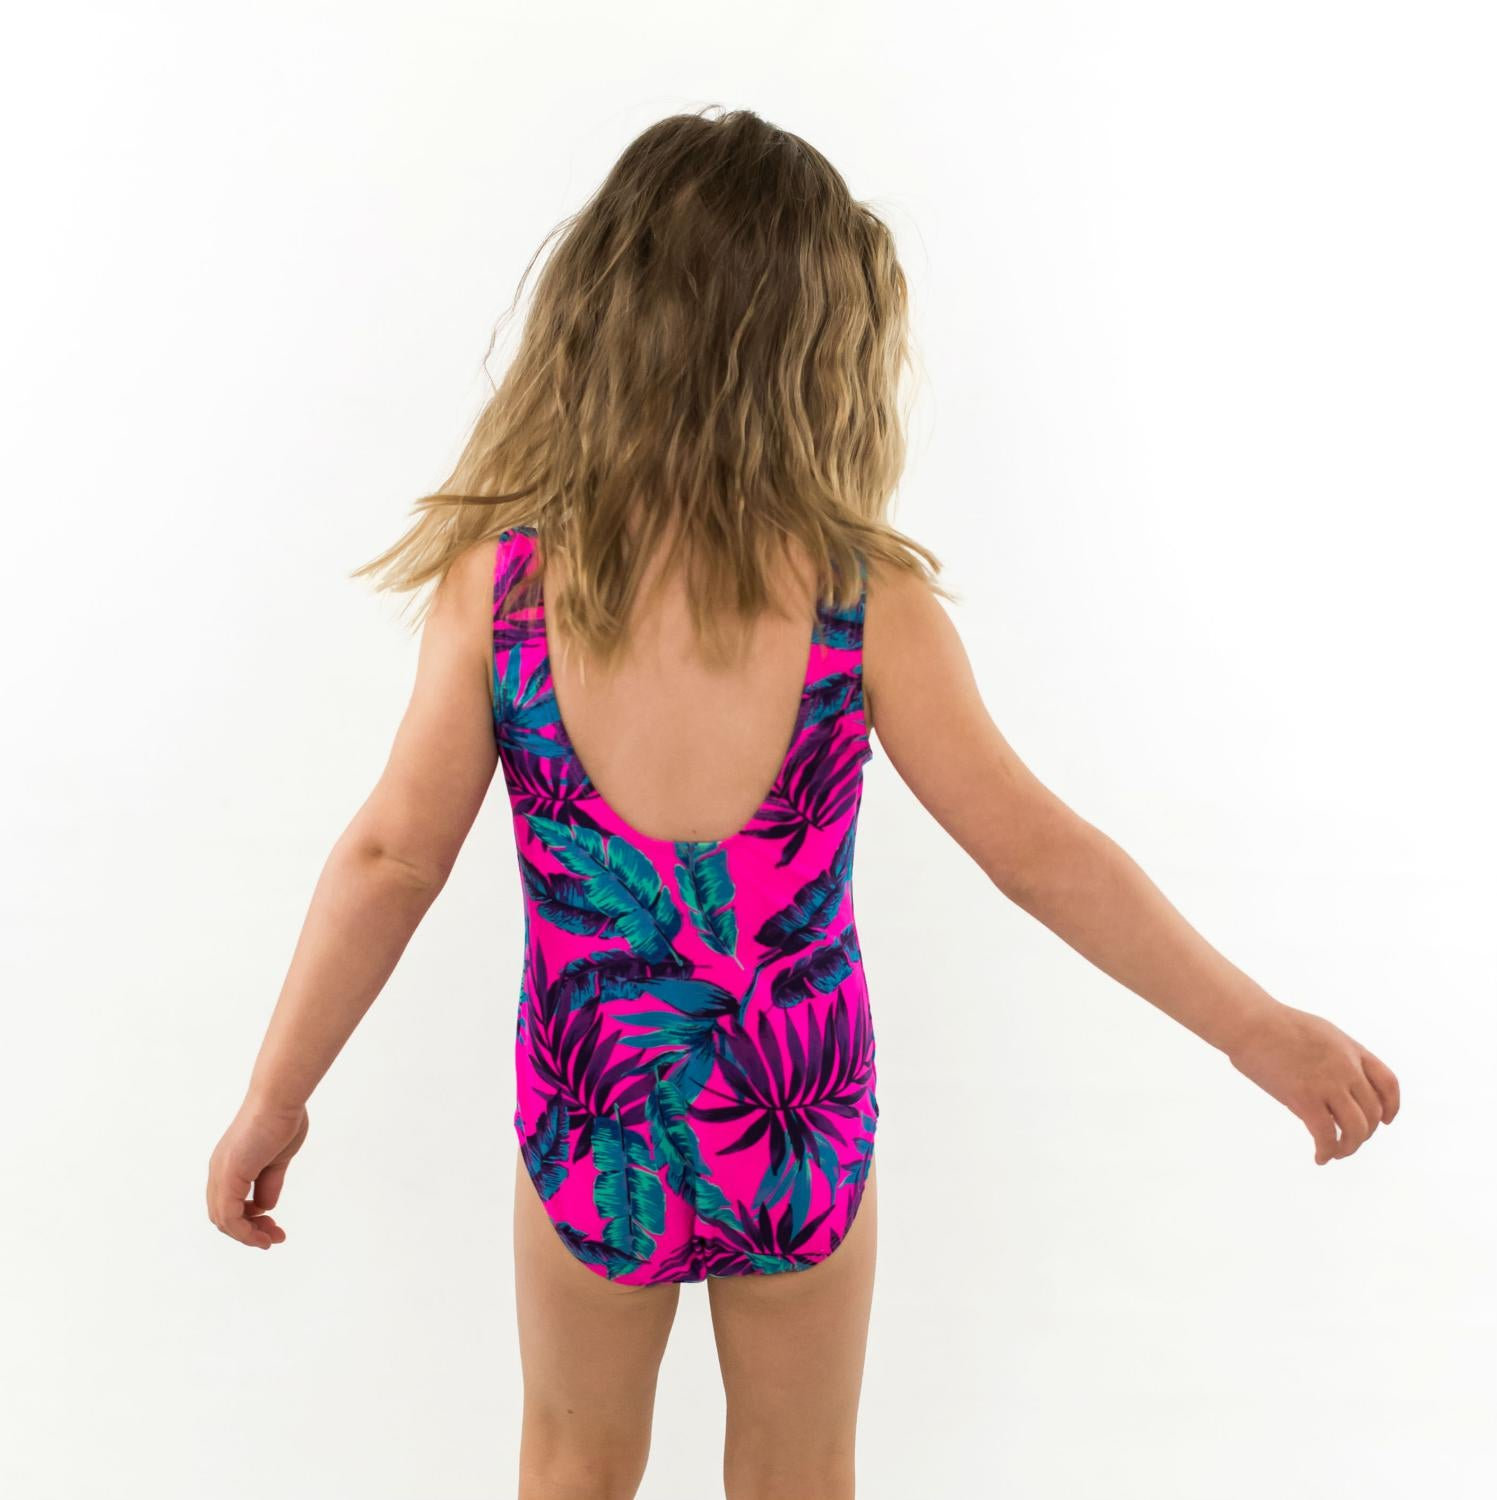 Scoop back one piece swimsuit for girls in Tropical leaves pink, blues, purples by Mini Street